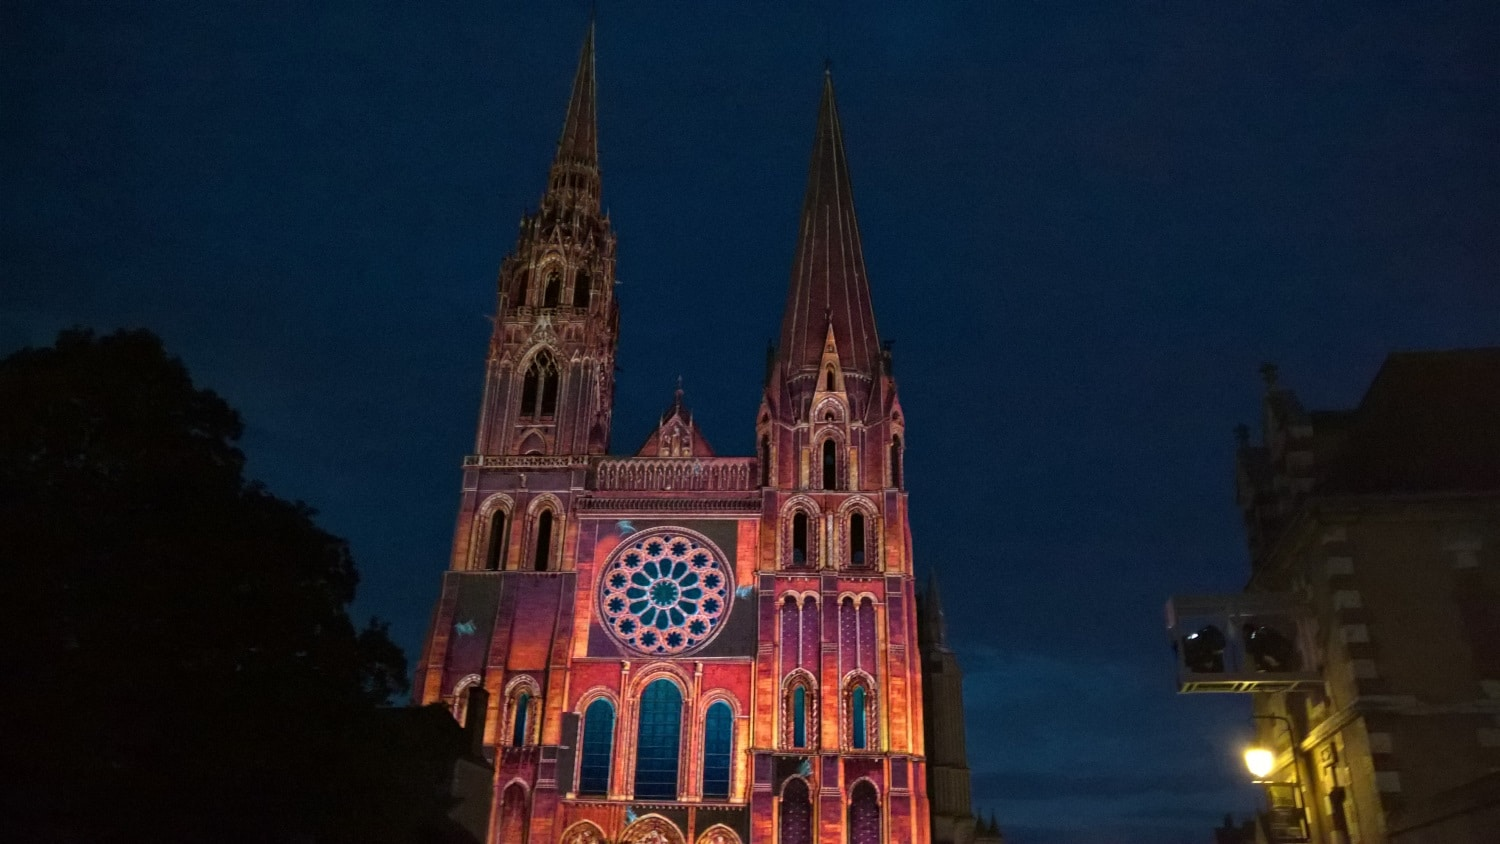 Projection mapping in the city of Chartres